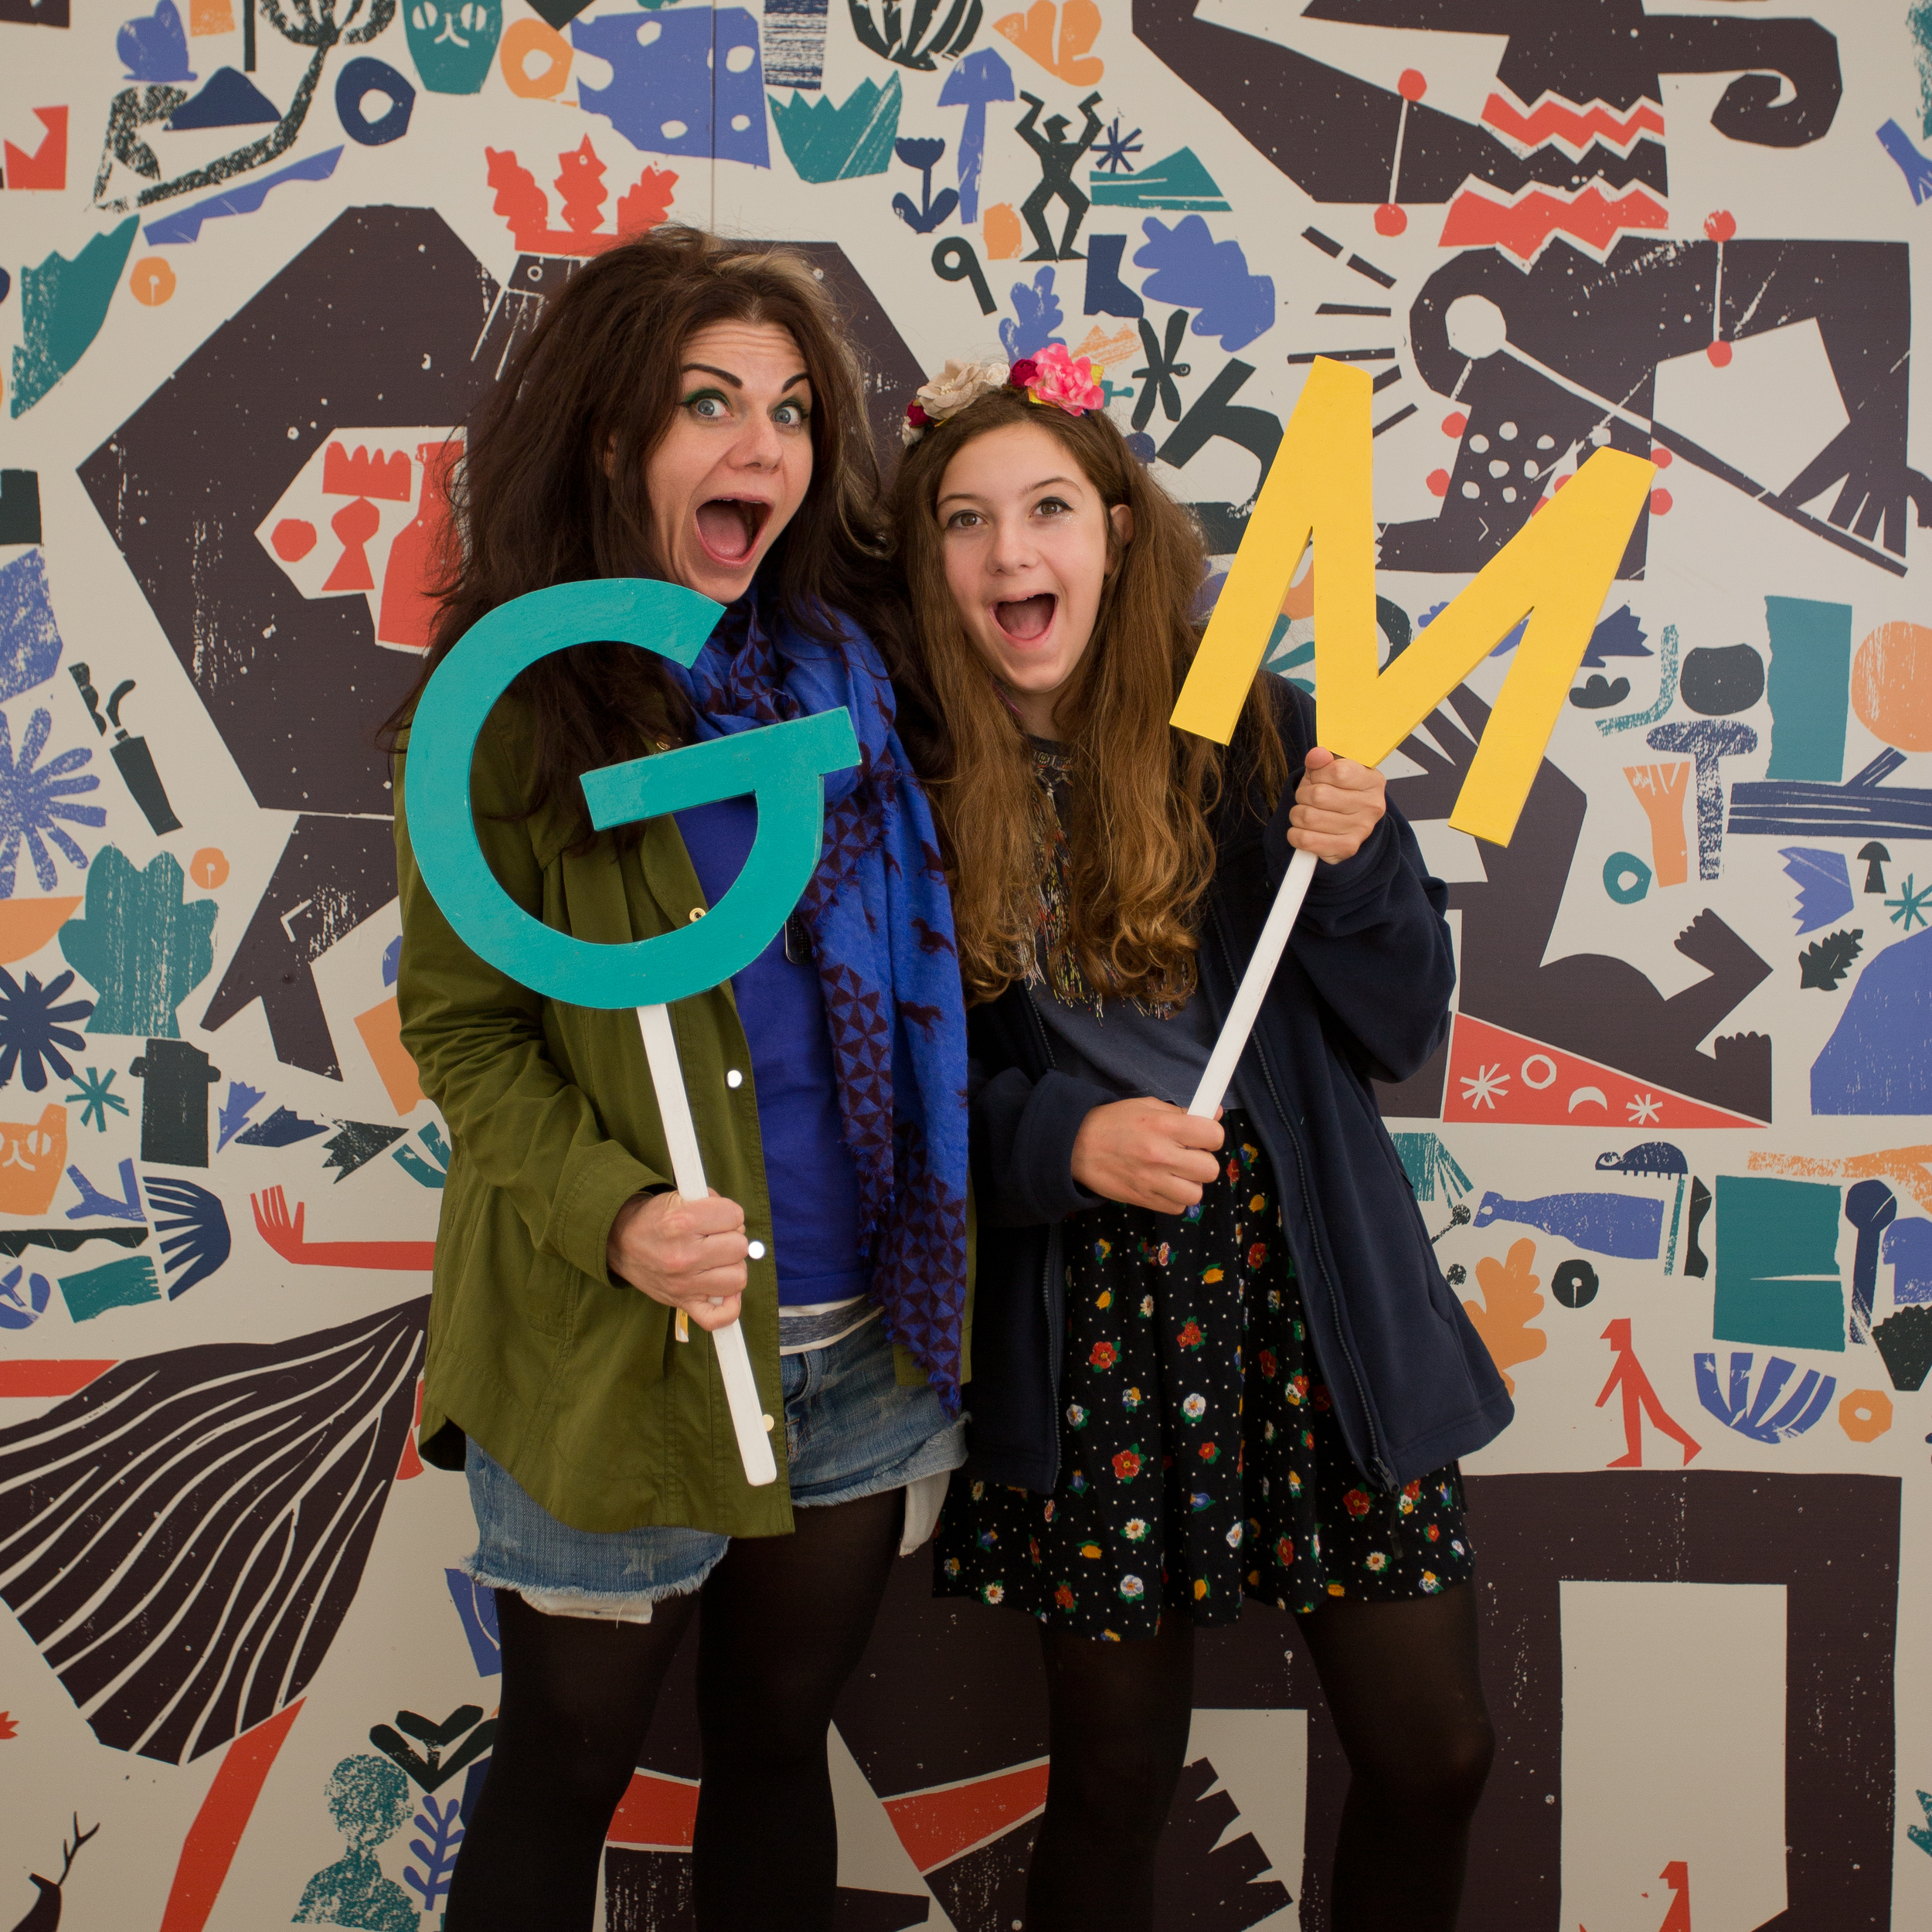 Caitlin Moran and her daughter backstage at Green Man Festival